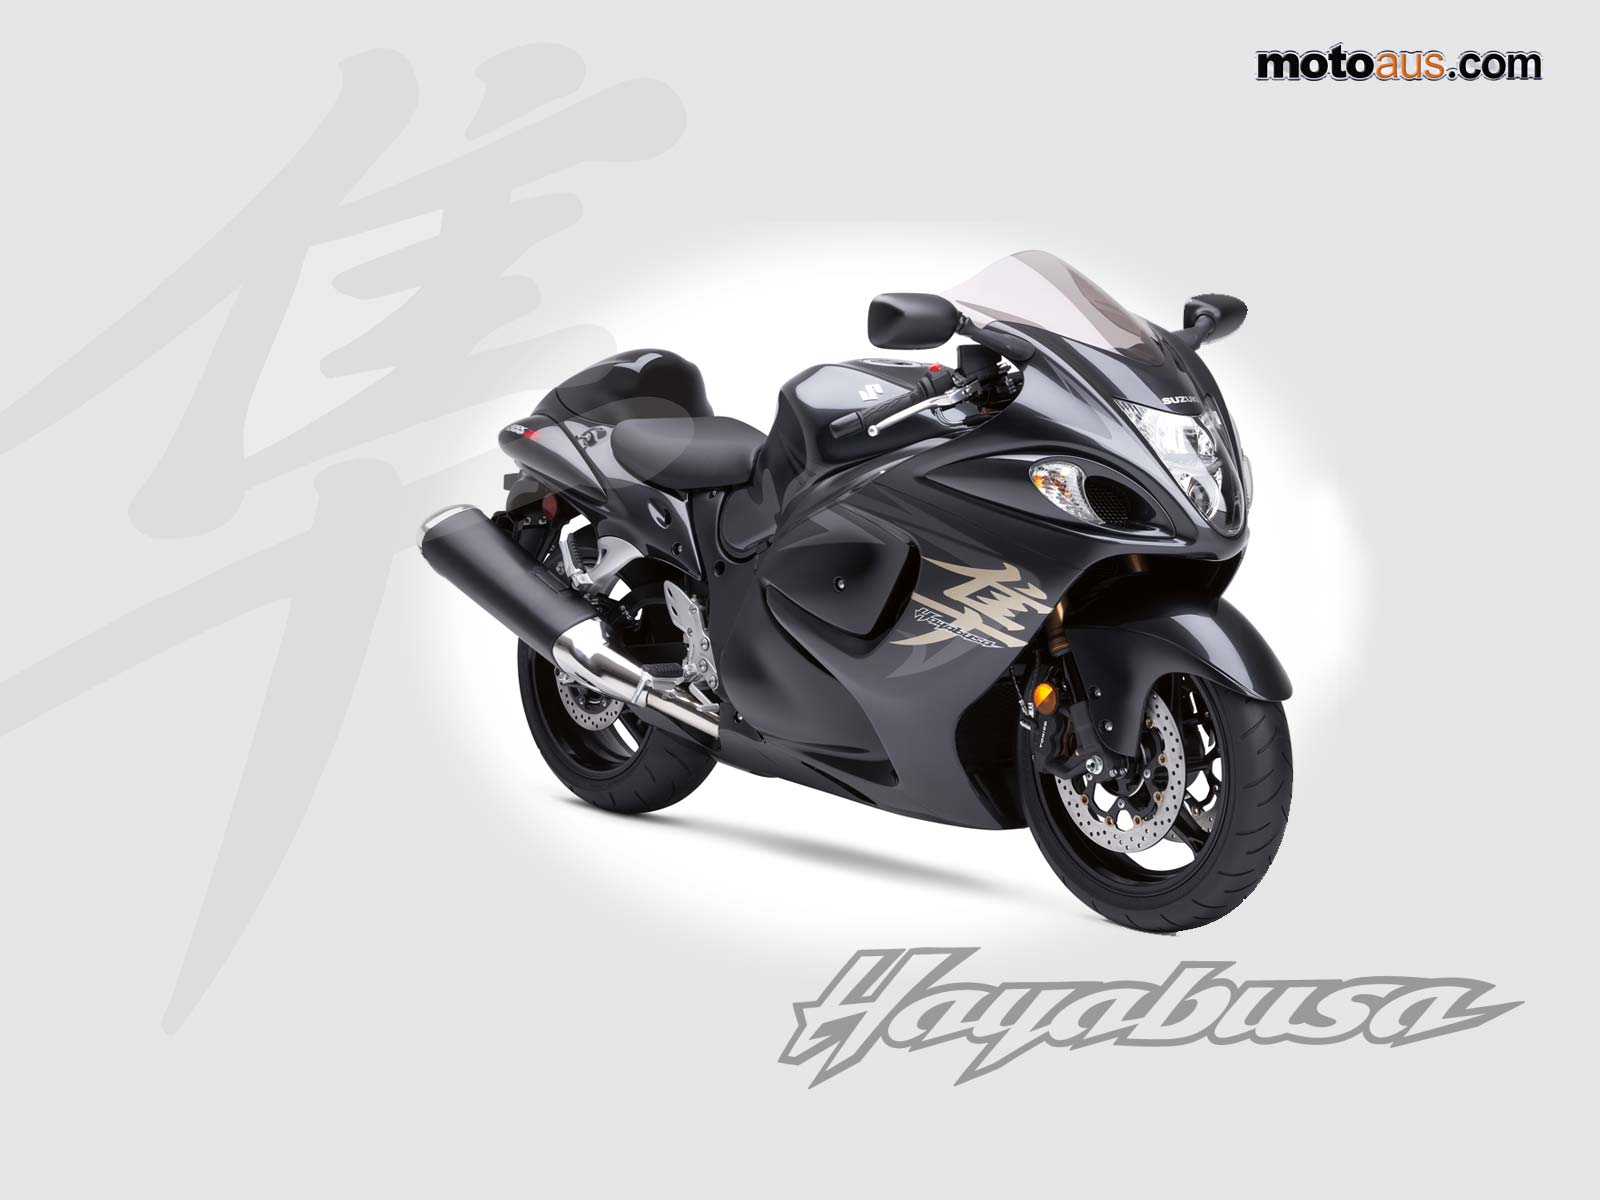 http://1.bp.blogspot.com/-lvZZJbcSUCU/TXSzjmWkG3I/AAAAAAAAGJs/2siGASsjpdg/s1600/suzuki-hayabusa-latest-wallpapers-1600-1920-1280-1028-2011-2010-2009-models-sexy-girls-super-bike-sexy-bike-topless-girls-on-bike-widescreen-wallpapers-hd-01.jpg